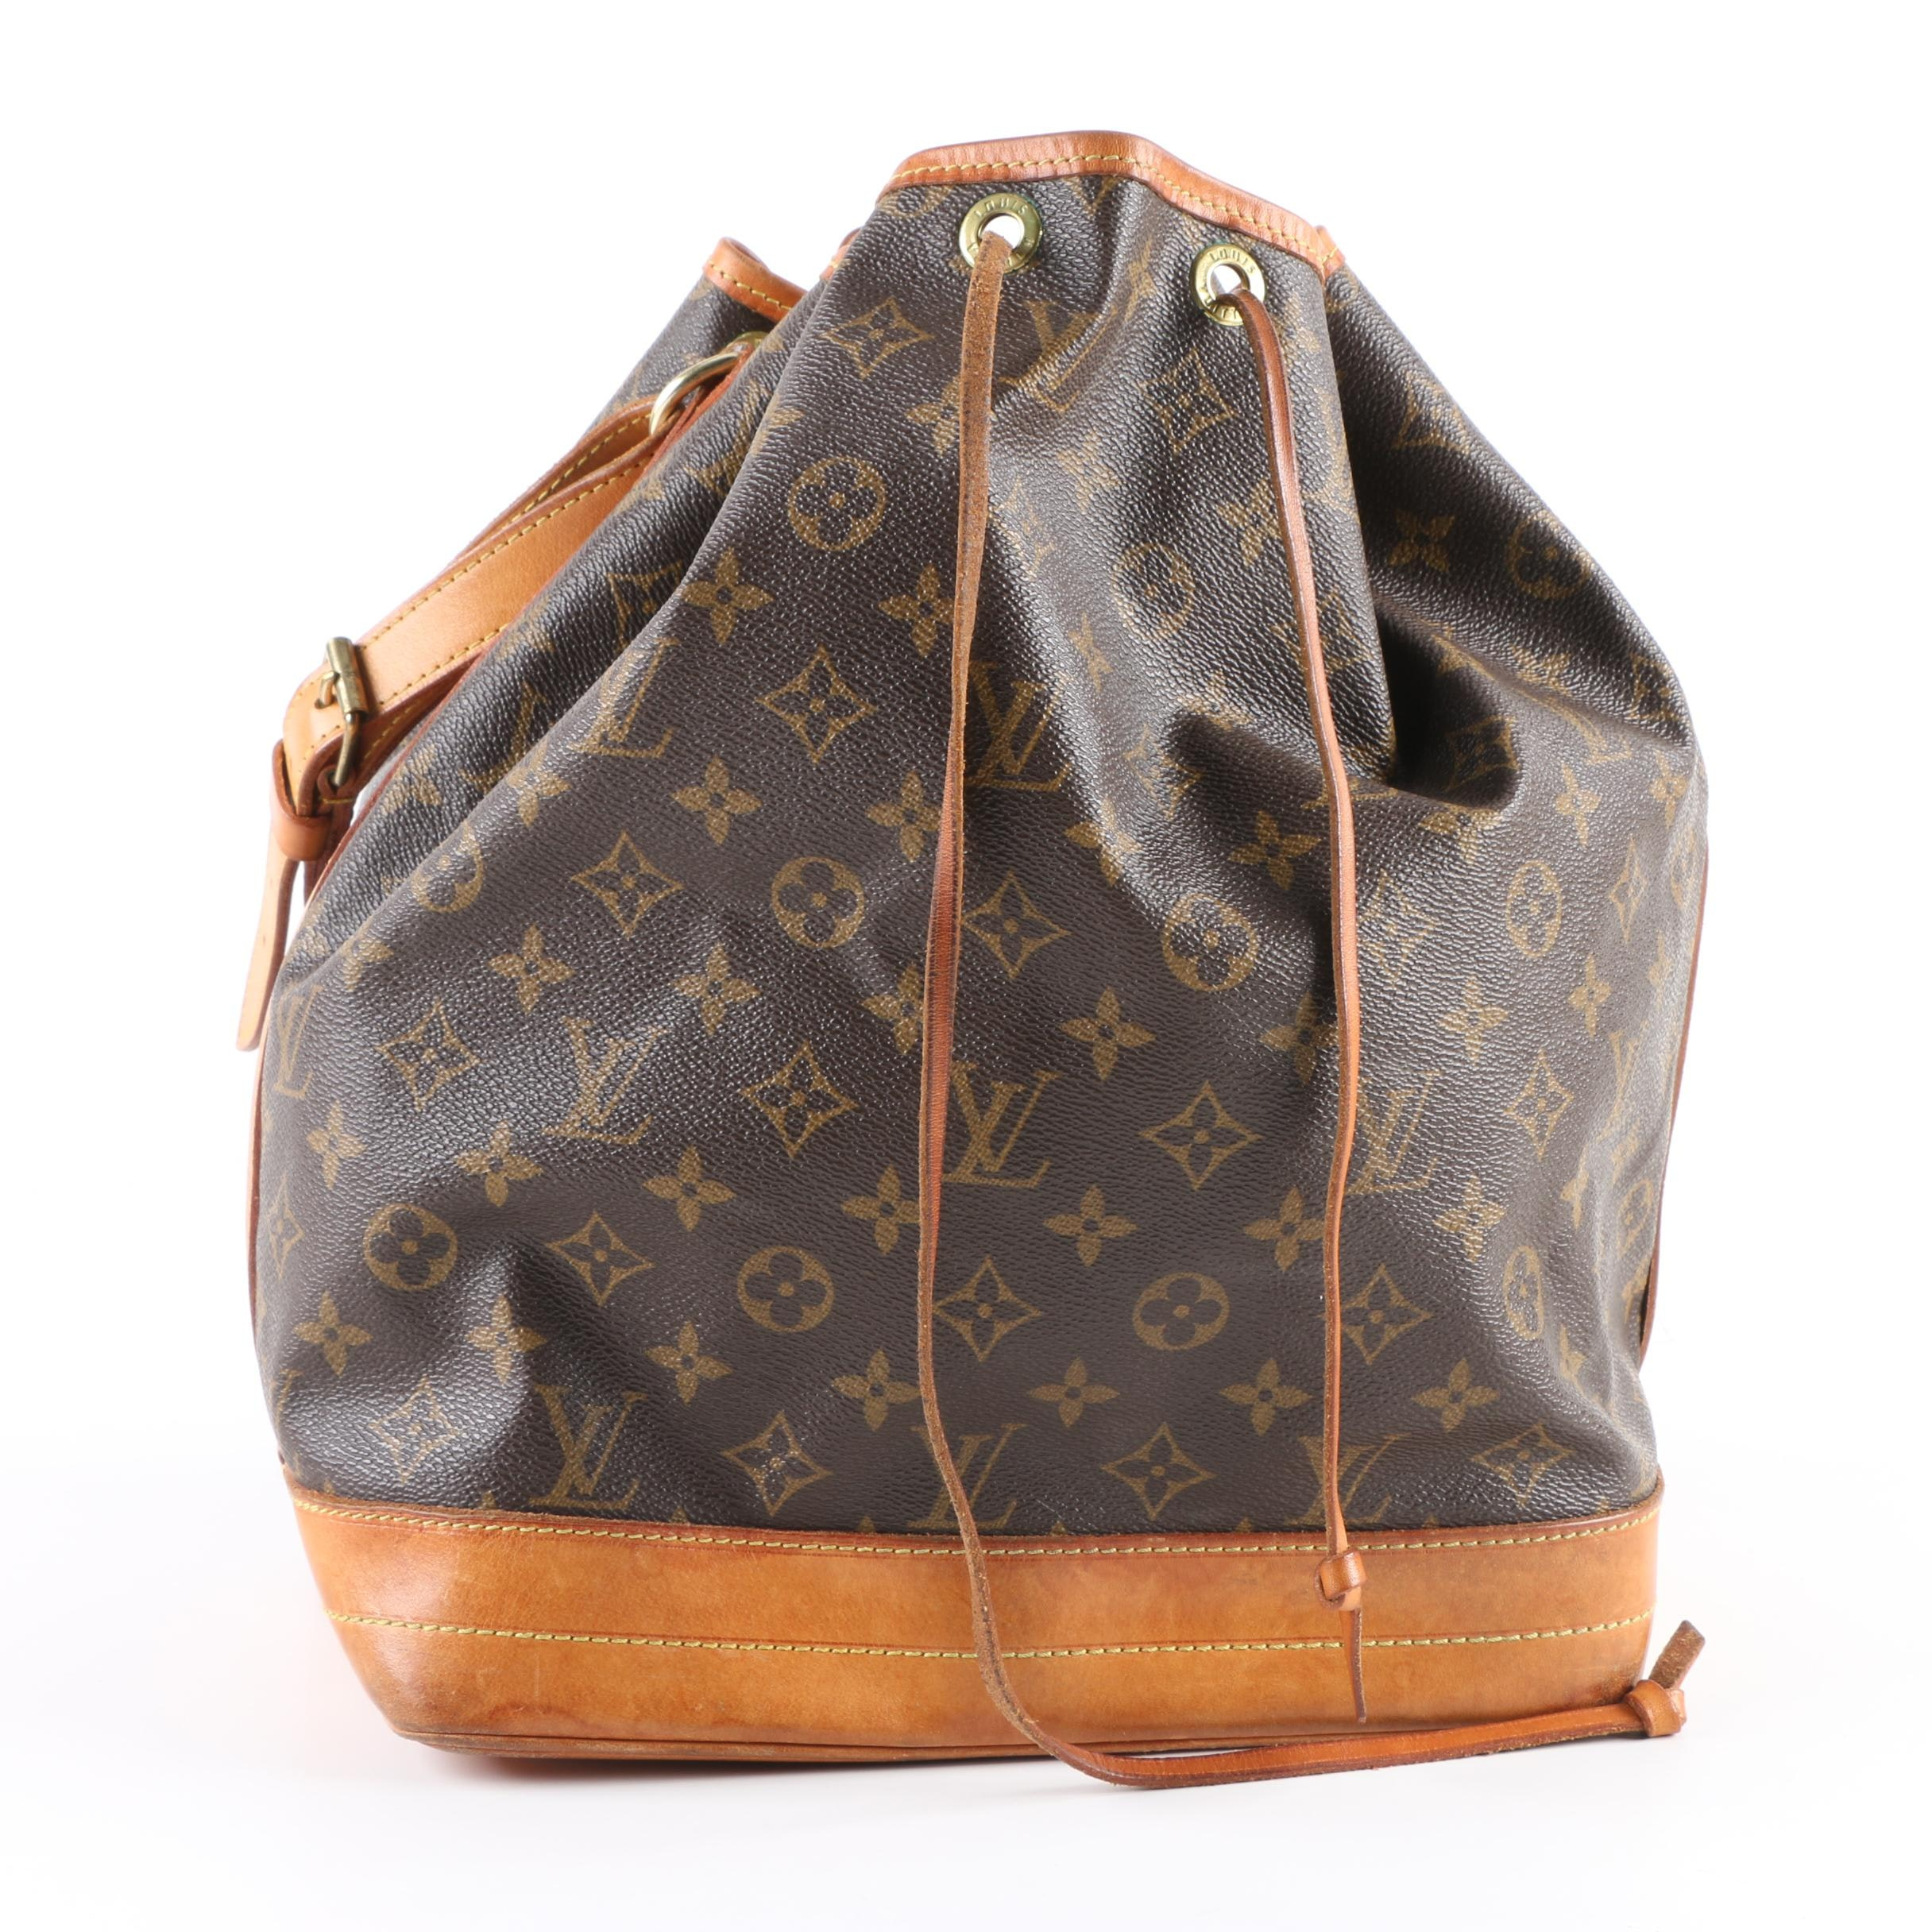 Louis Vuitton of Paris Monogram Noé Bag